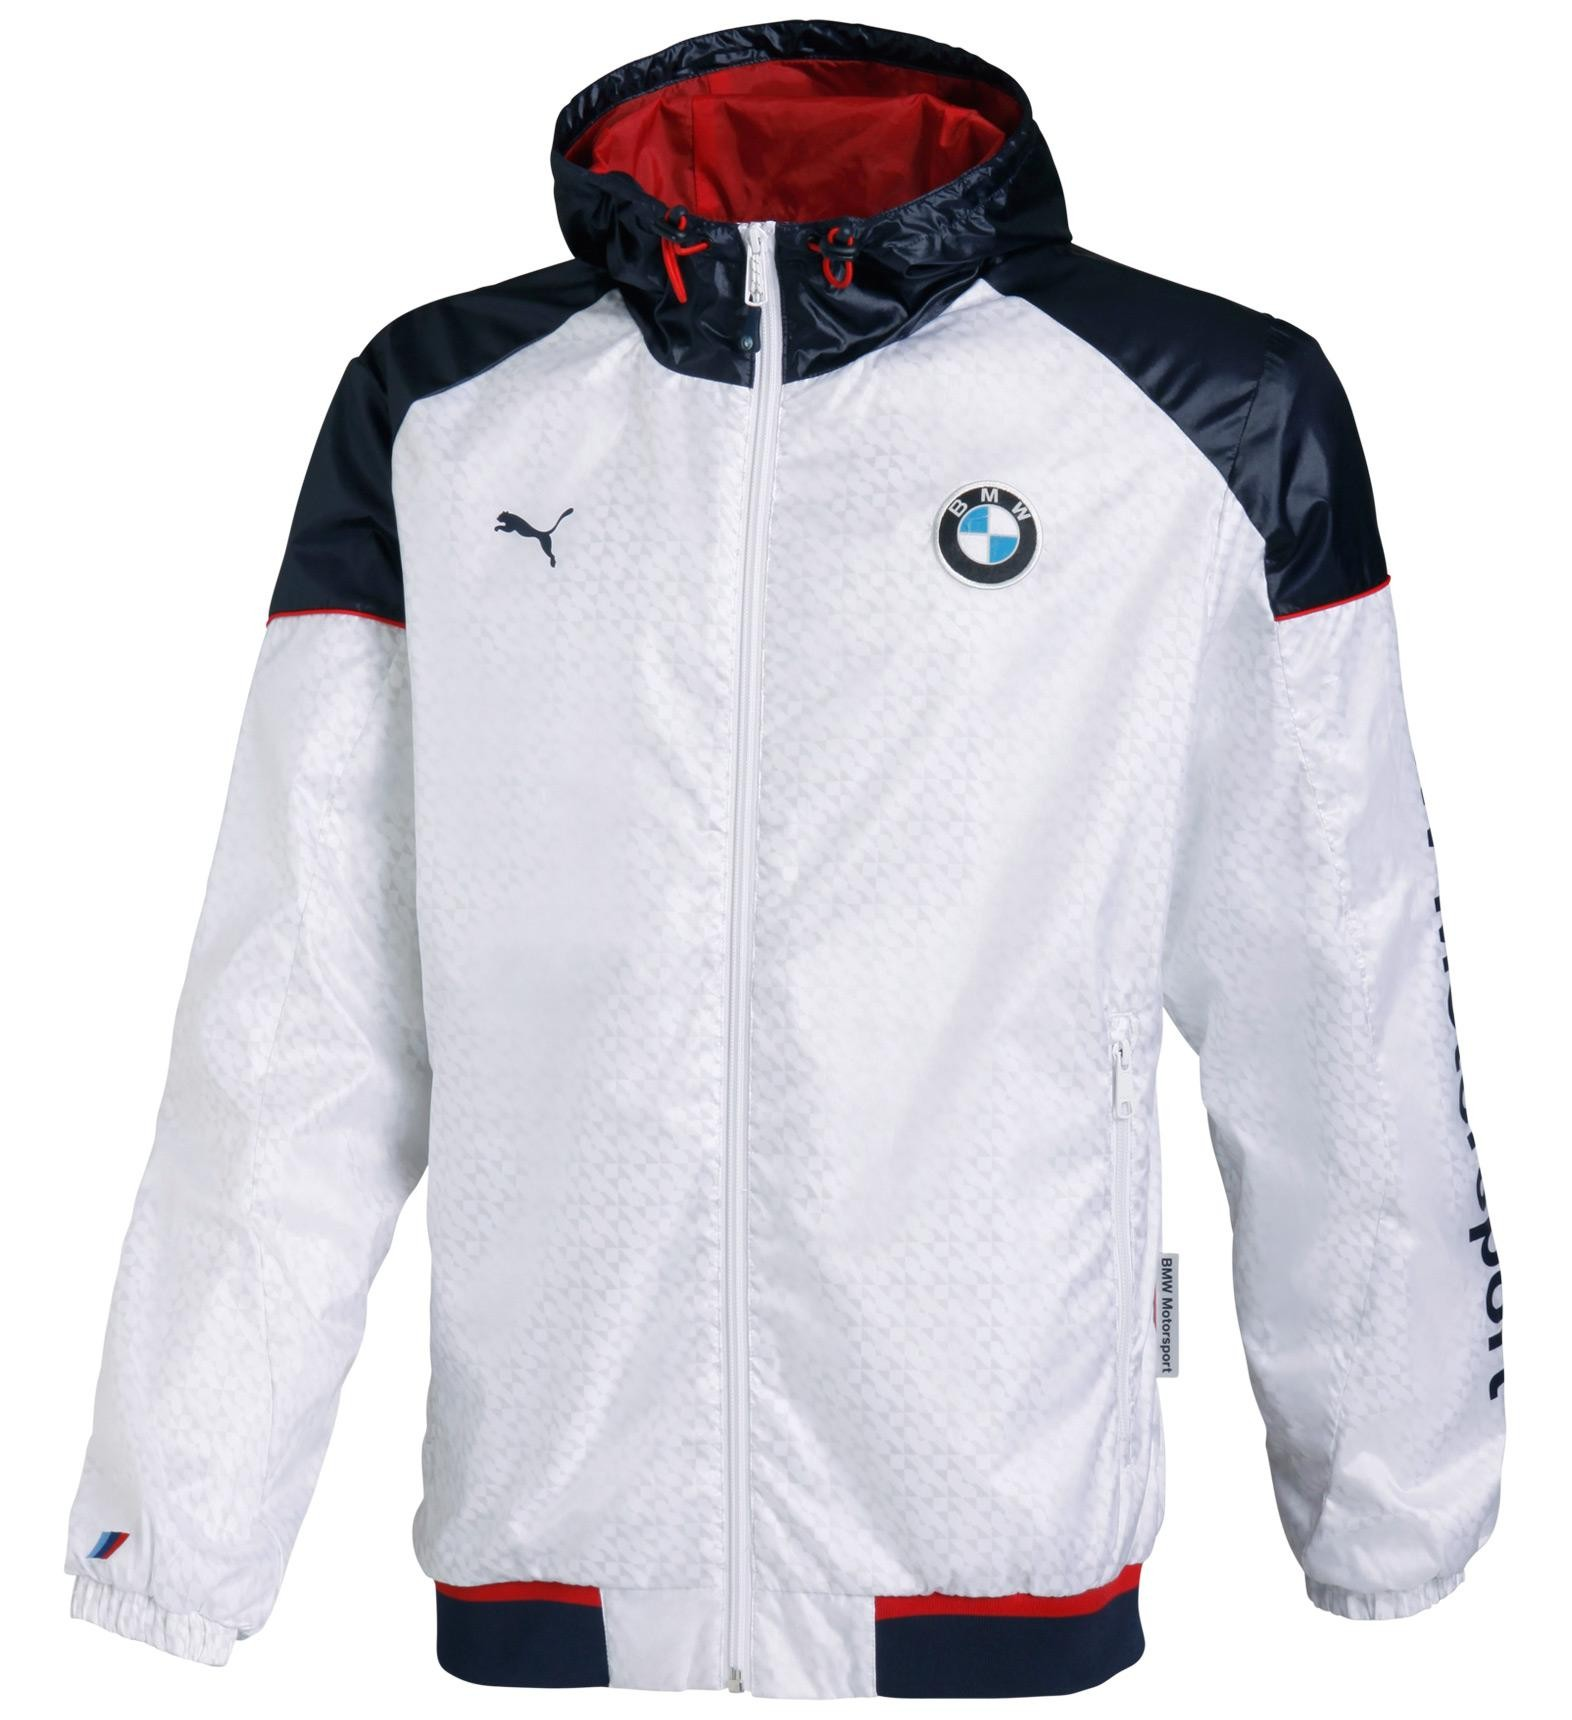 puma bmw motorsport jacket on sale off46 discounts. Black Bedroom Furniture Sets. Home Design Ideas